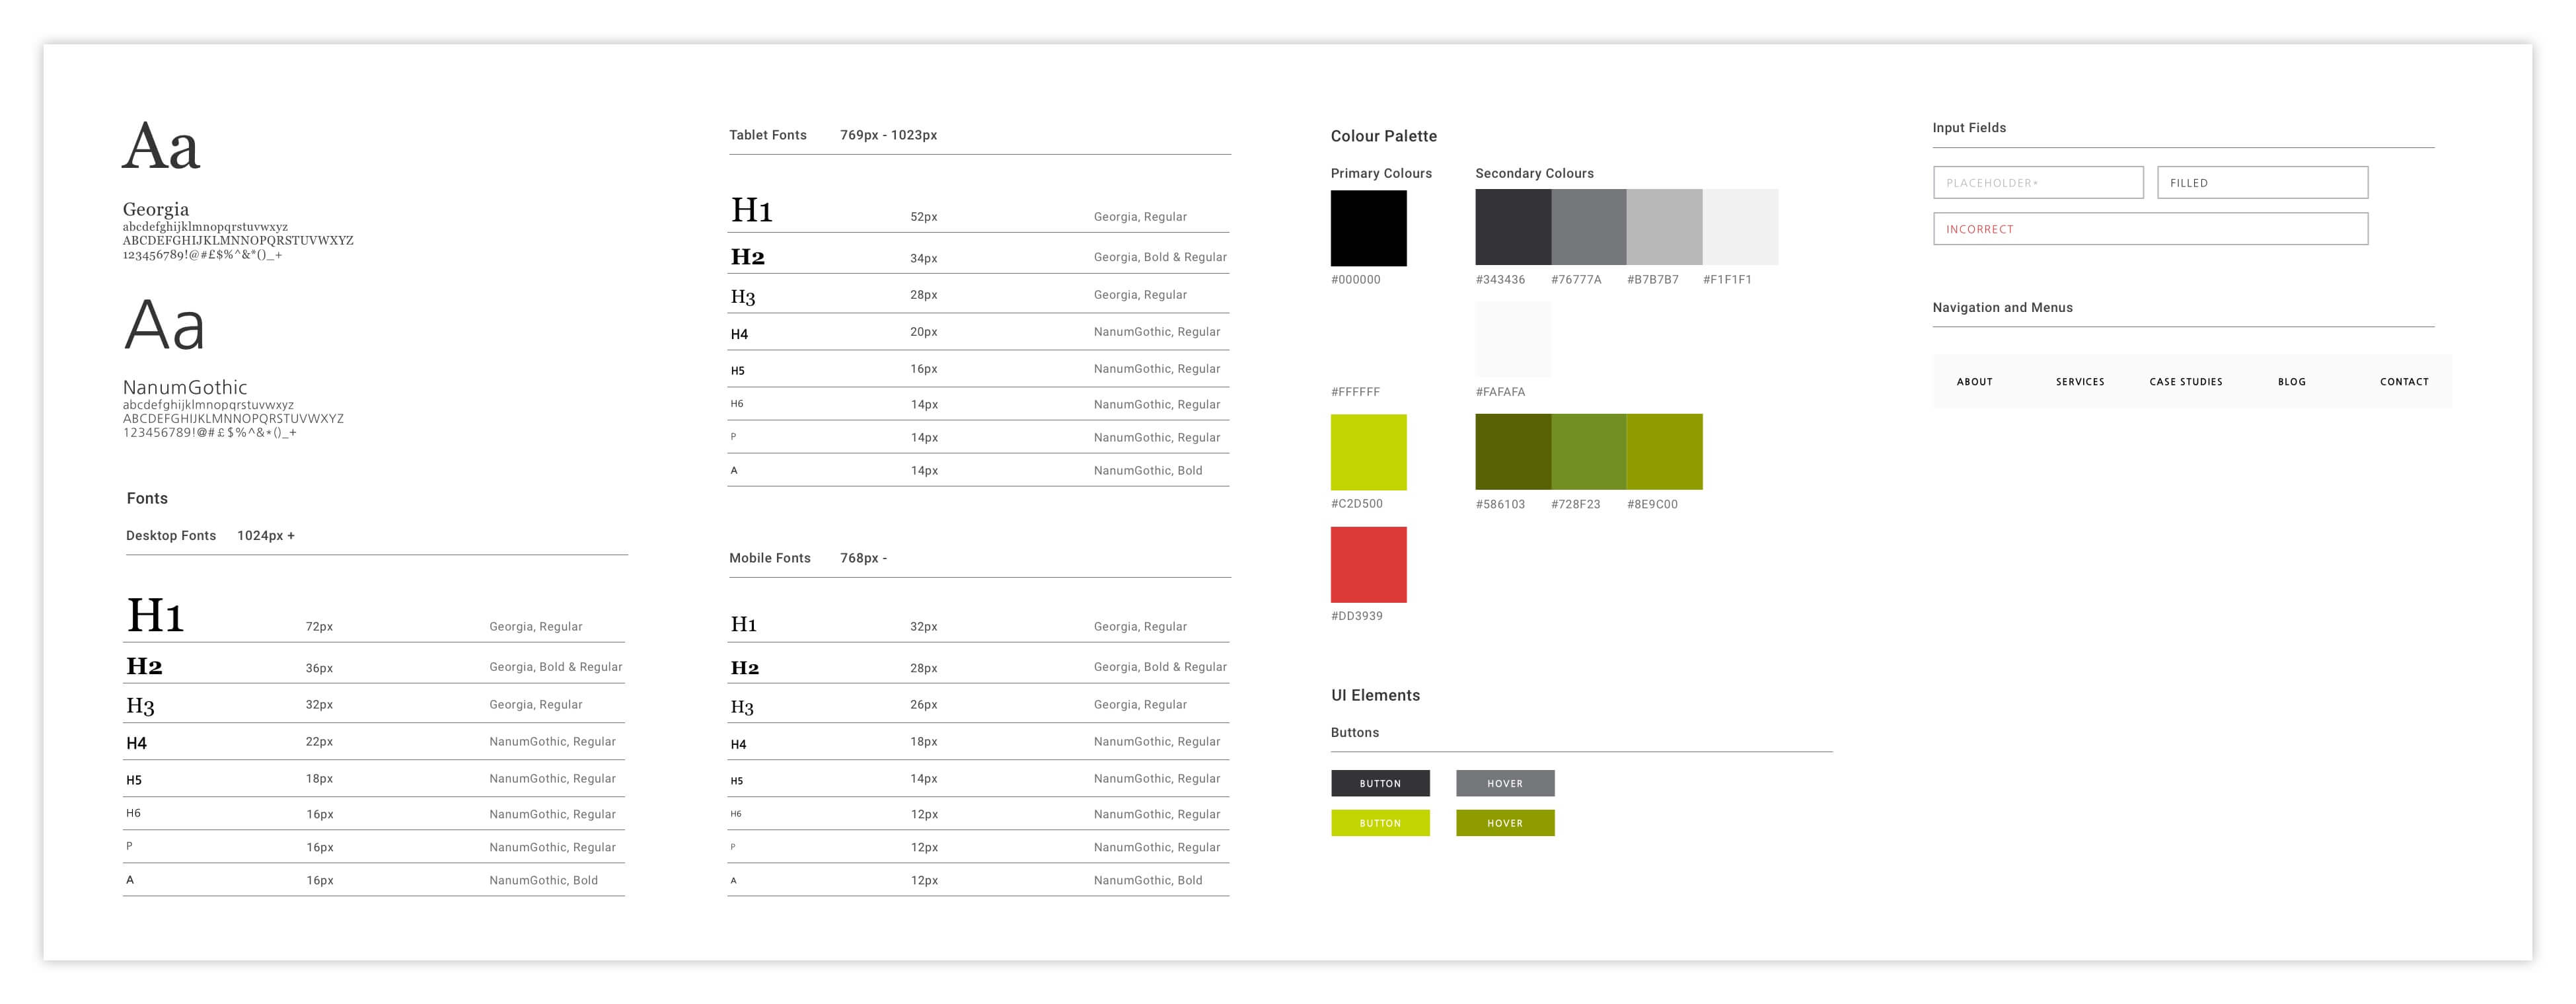 Example Style Guide - 6 Ways Designers Can Help Developers | Appeal Digital